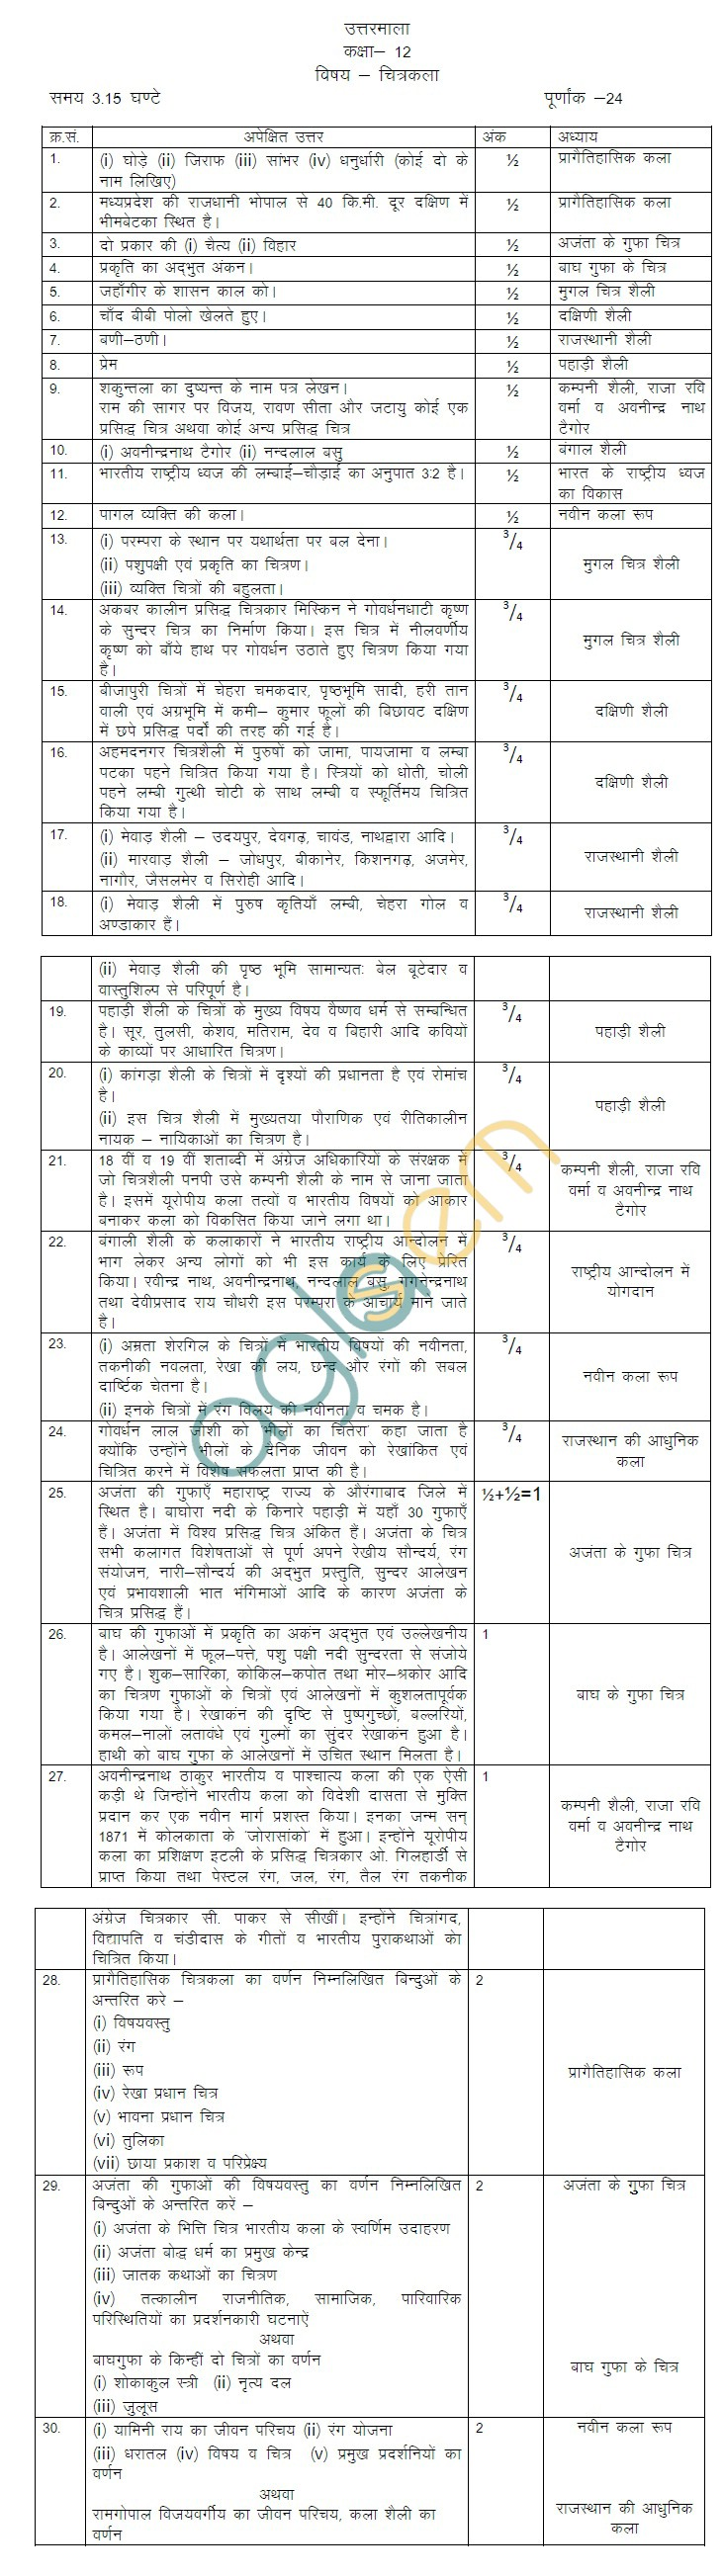 Rajasthan Board Class 12 Drawing Model Question Paper